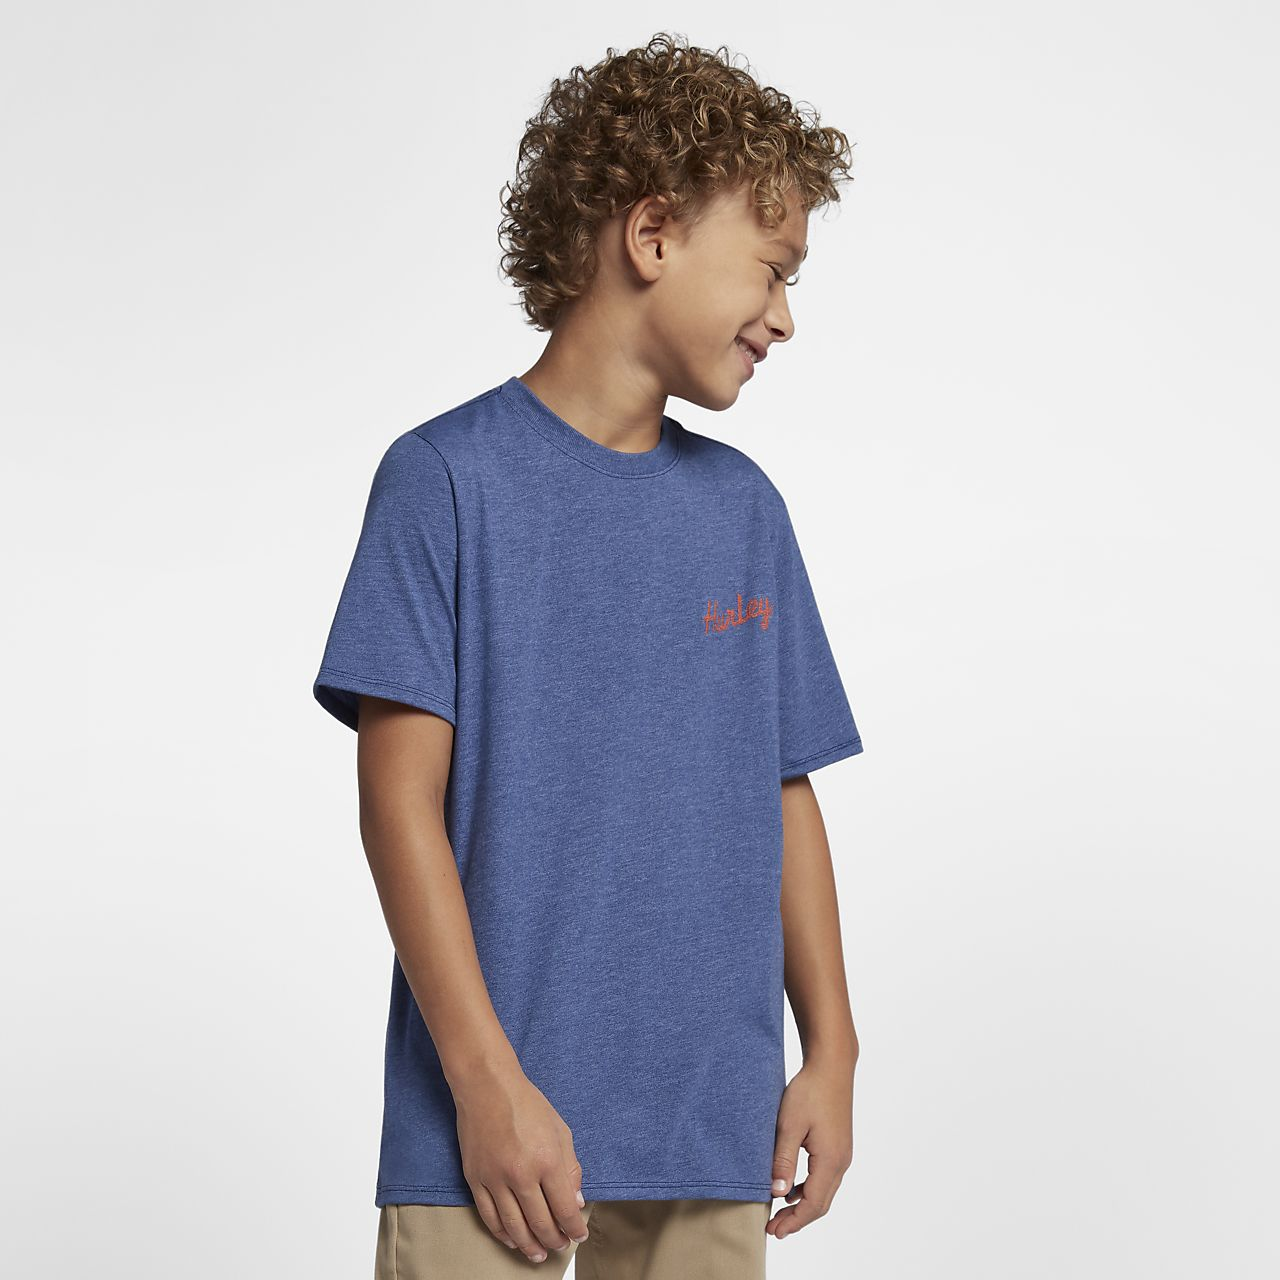 Hurley Chained Sets Boys' T-Shirt